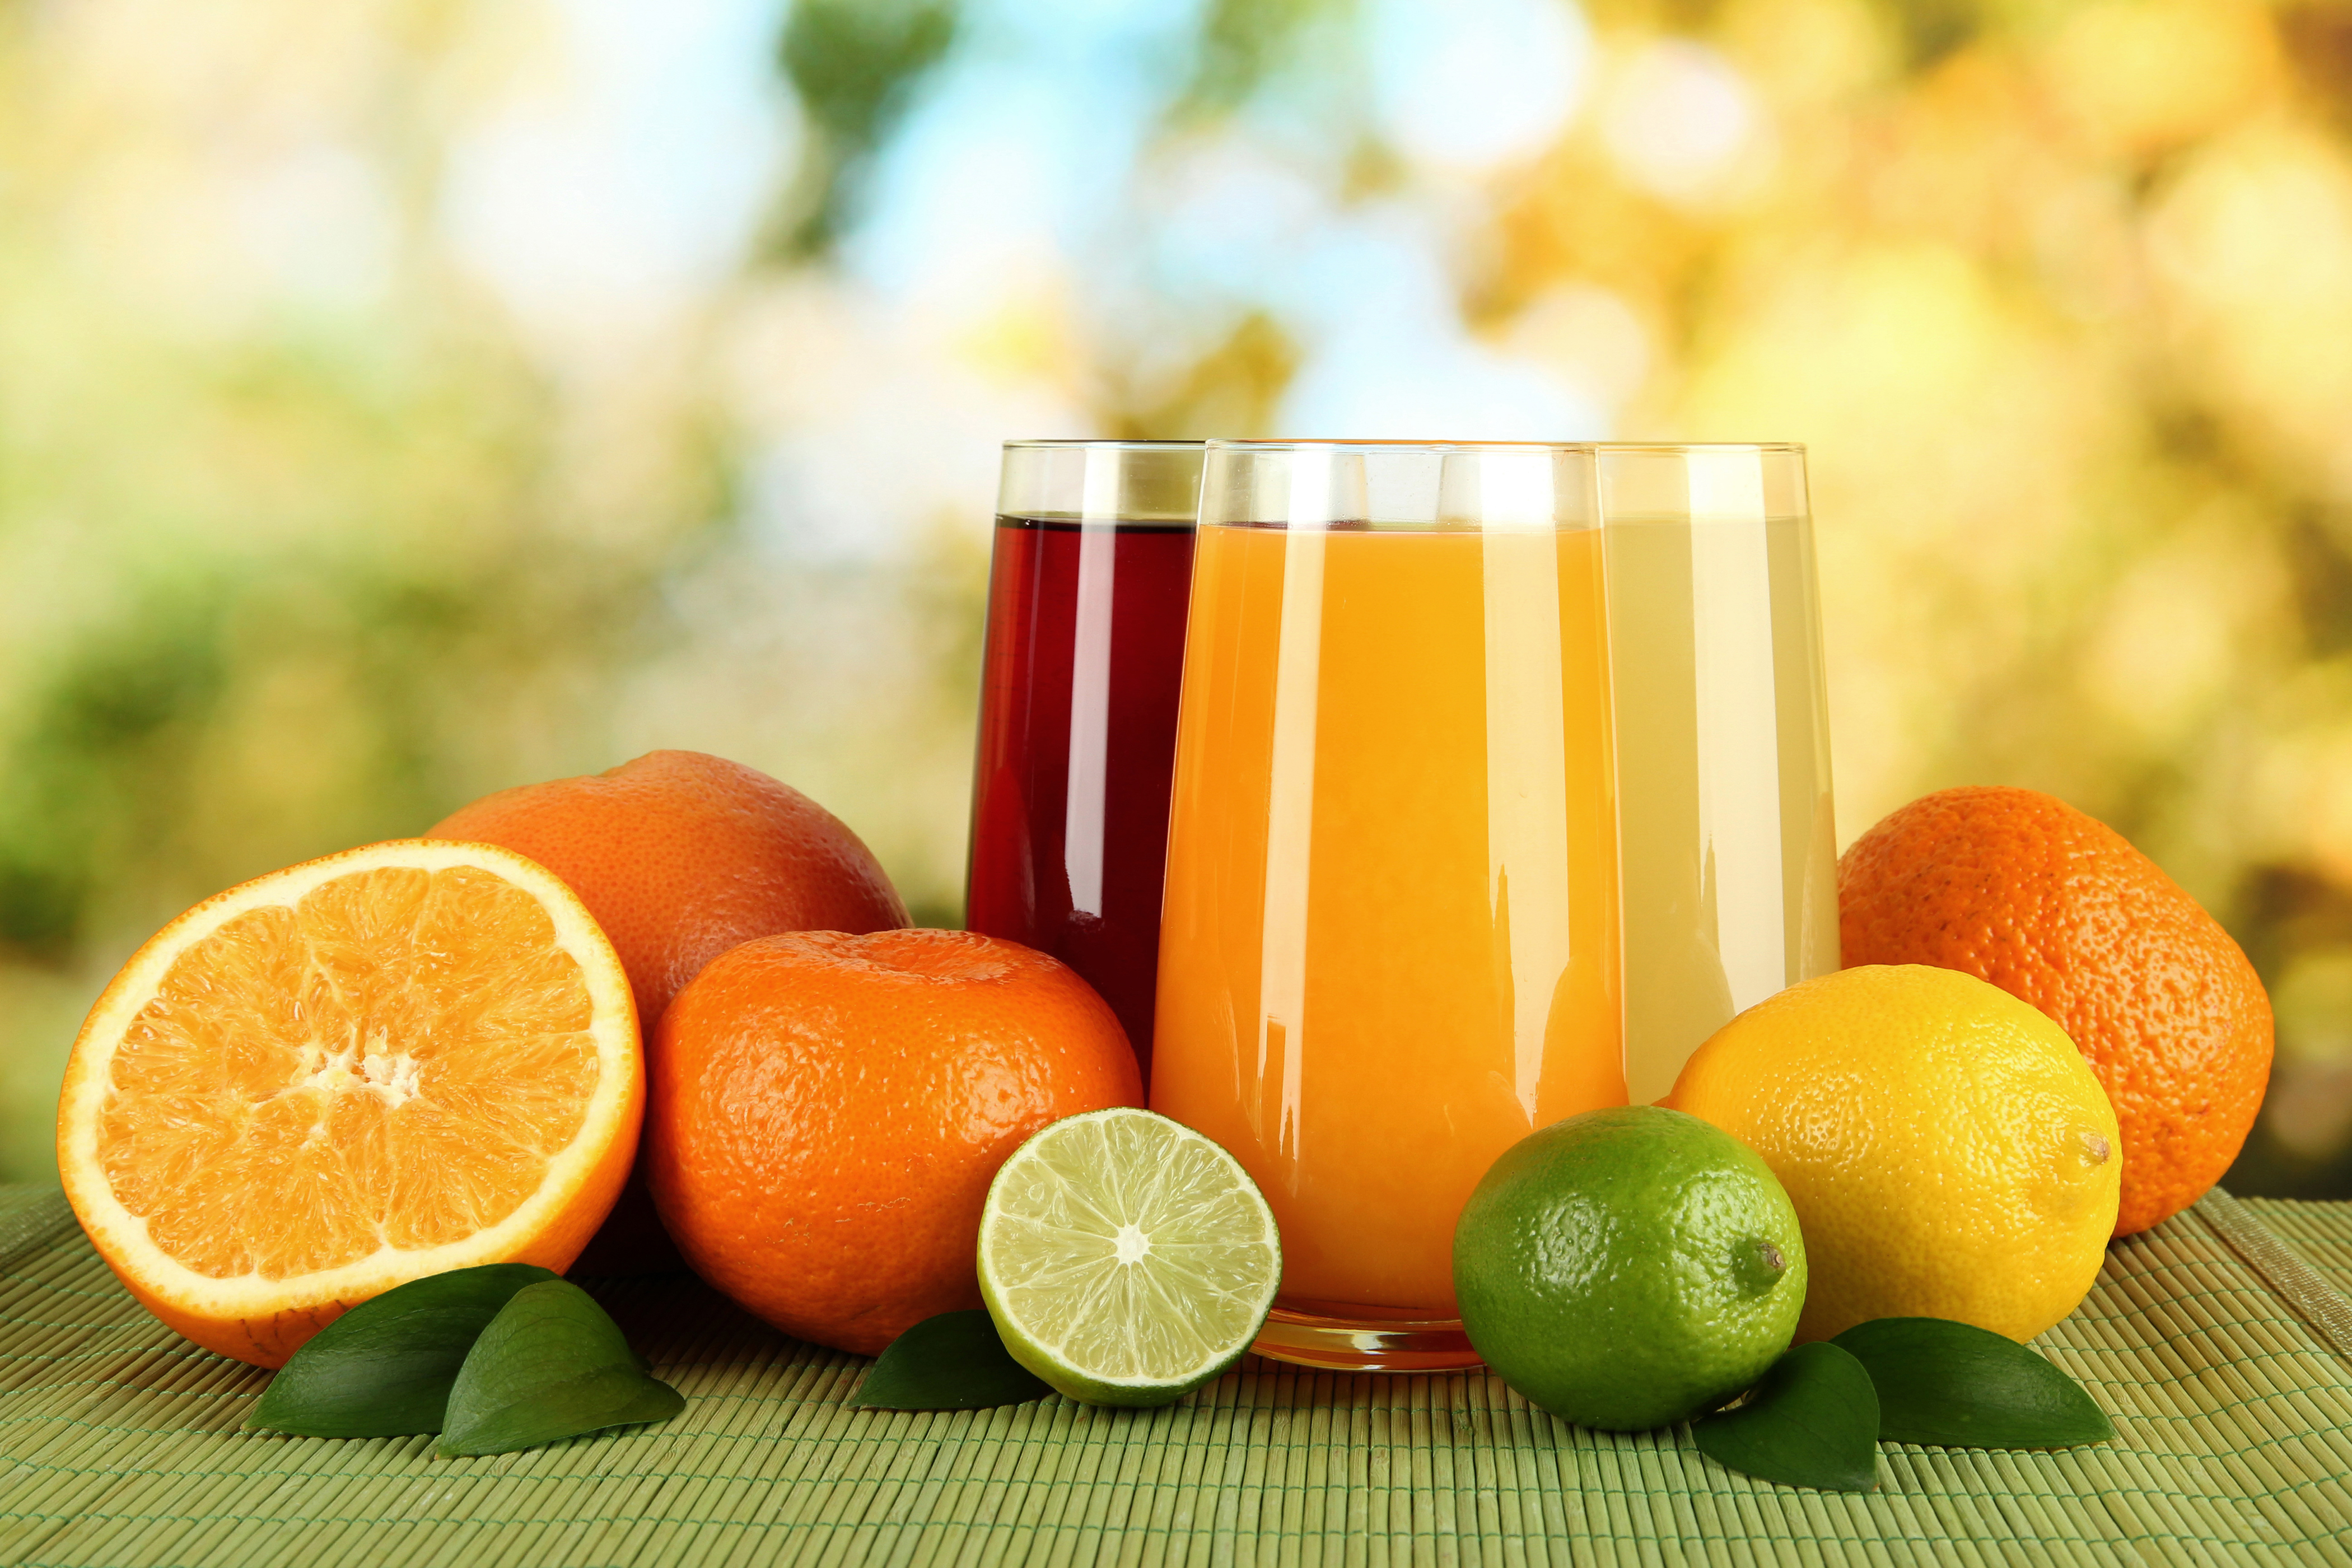 finding out whether brands of orange juice contain different levels of vitamin c